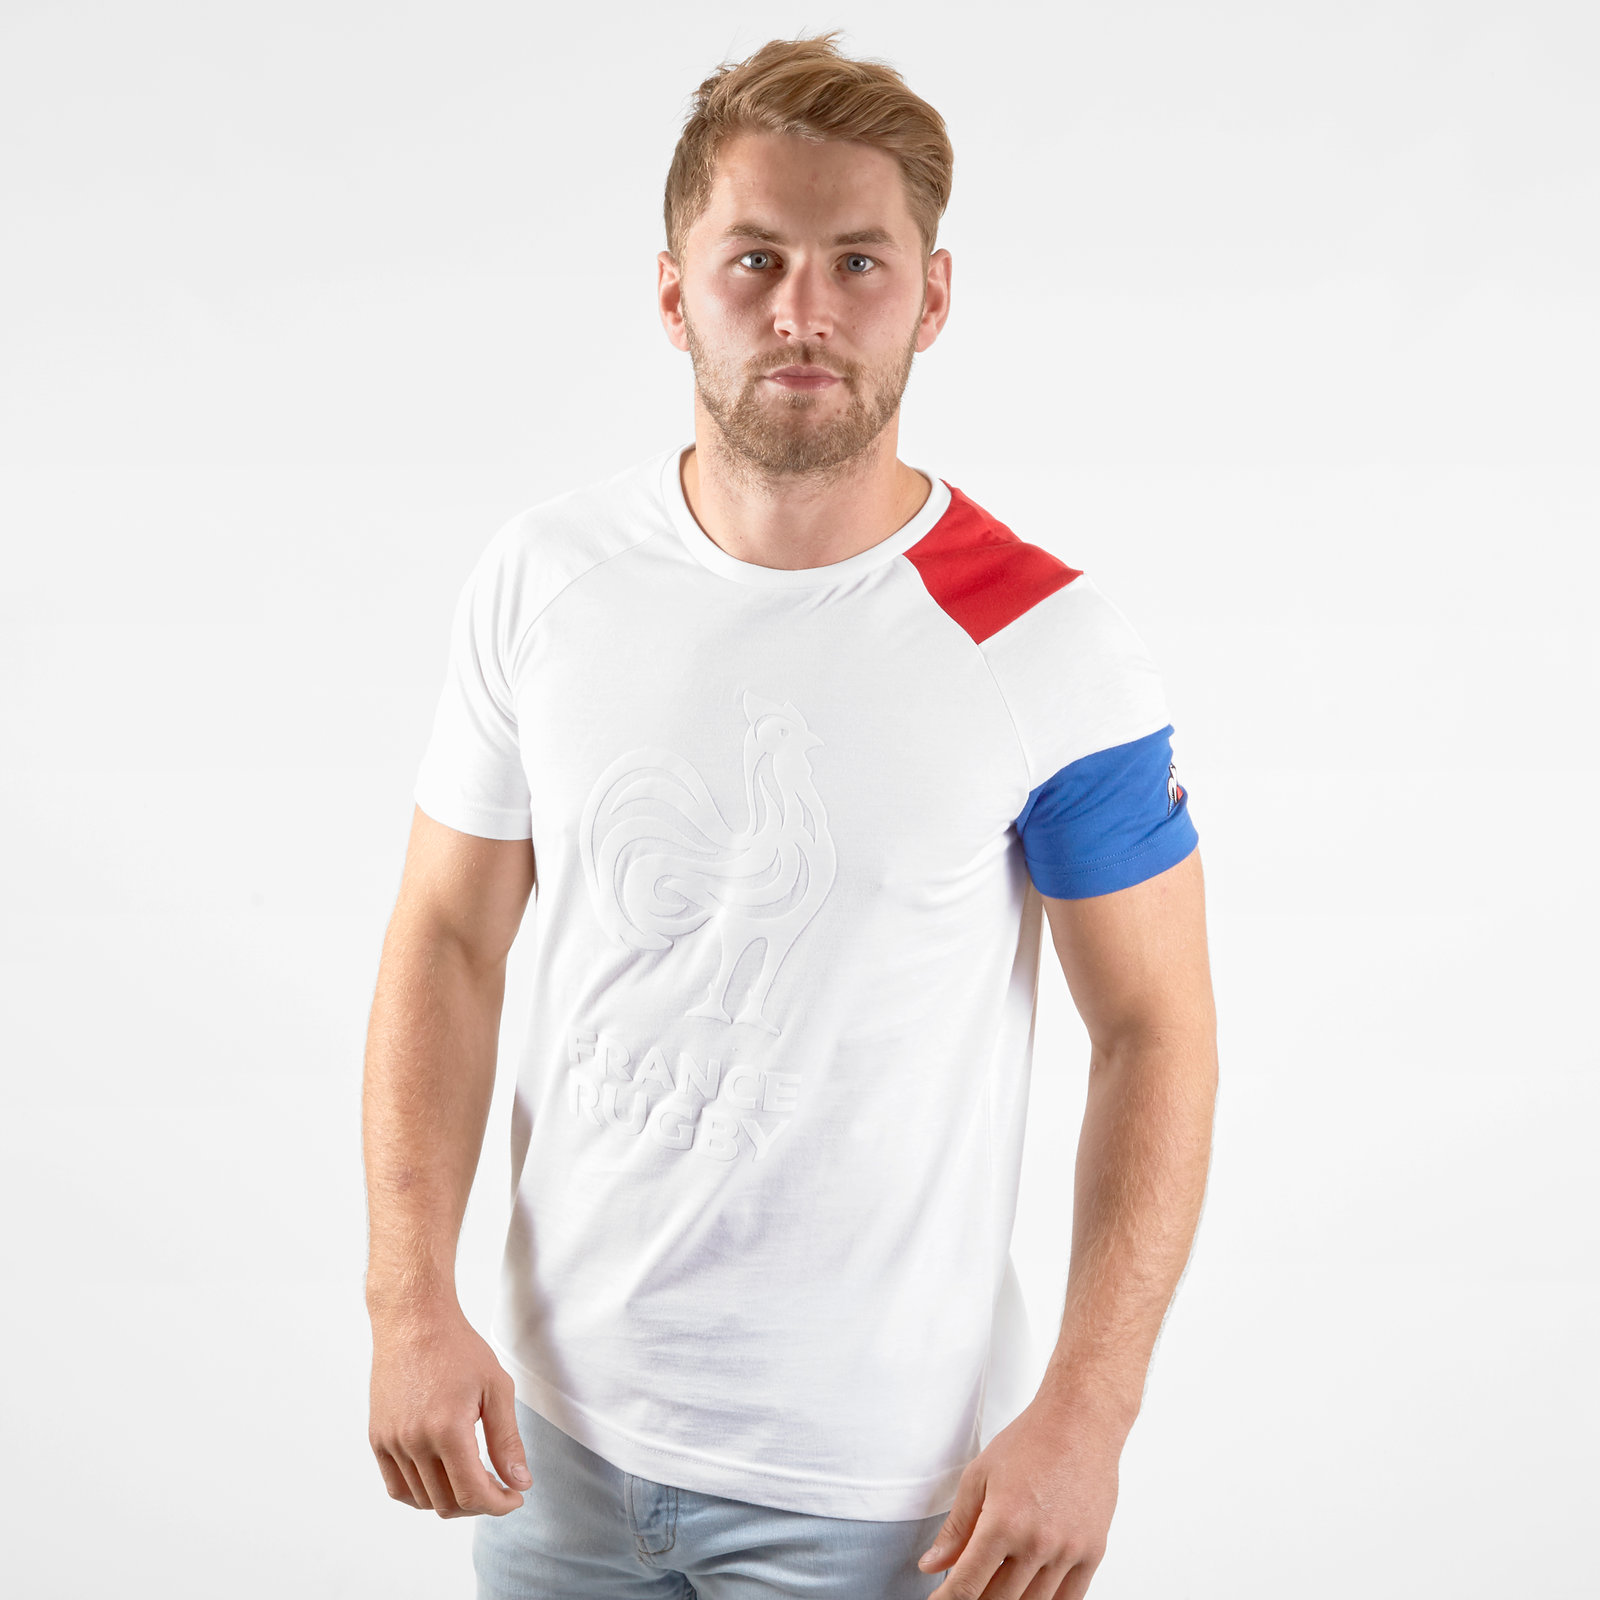 Le Coq Sportif Mens France 2019 20 Supporters Rugby T-Shirt Tee Top